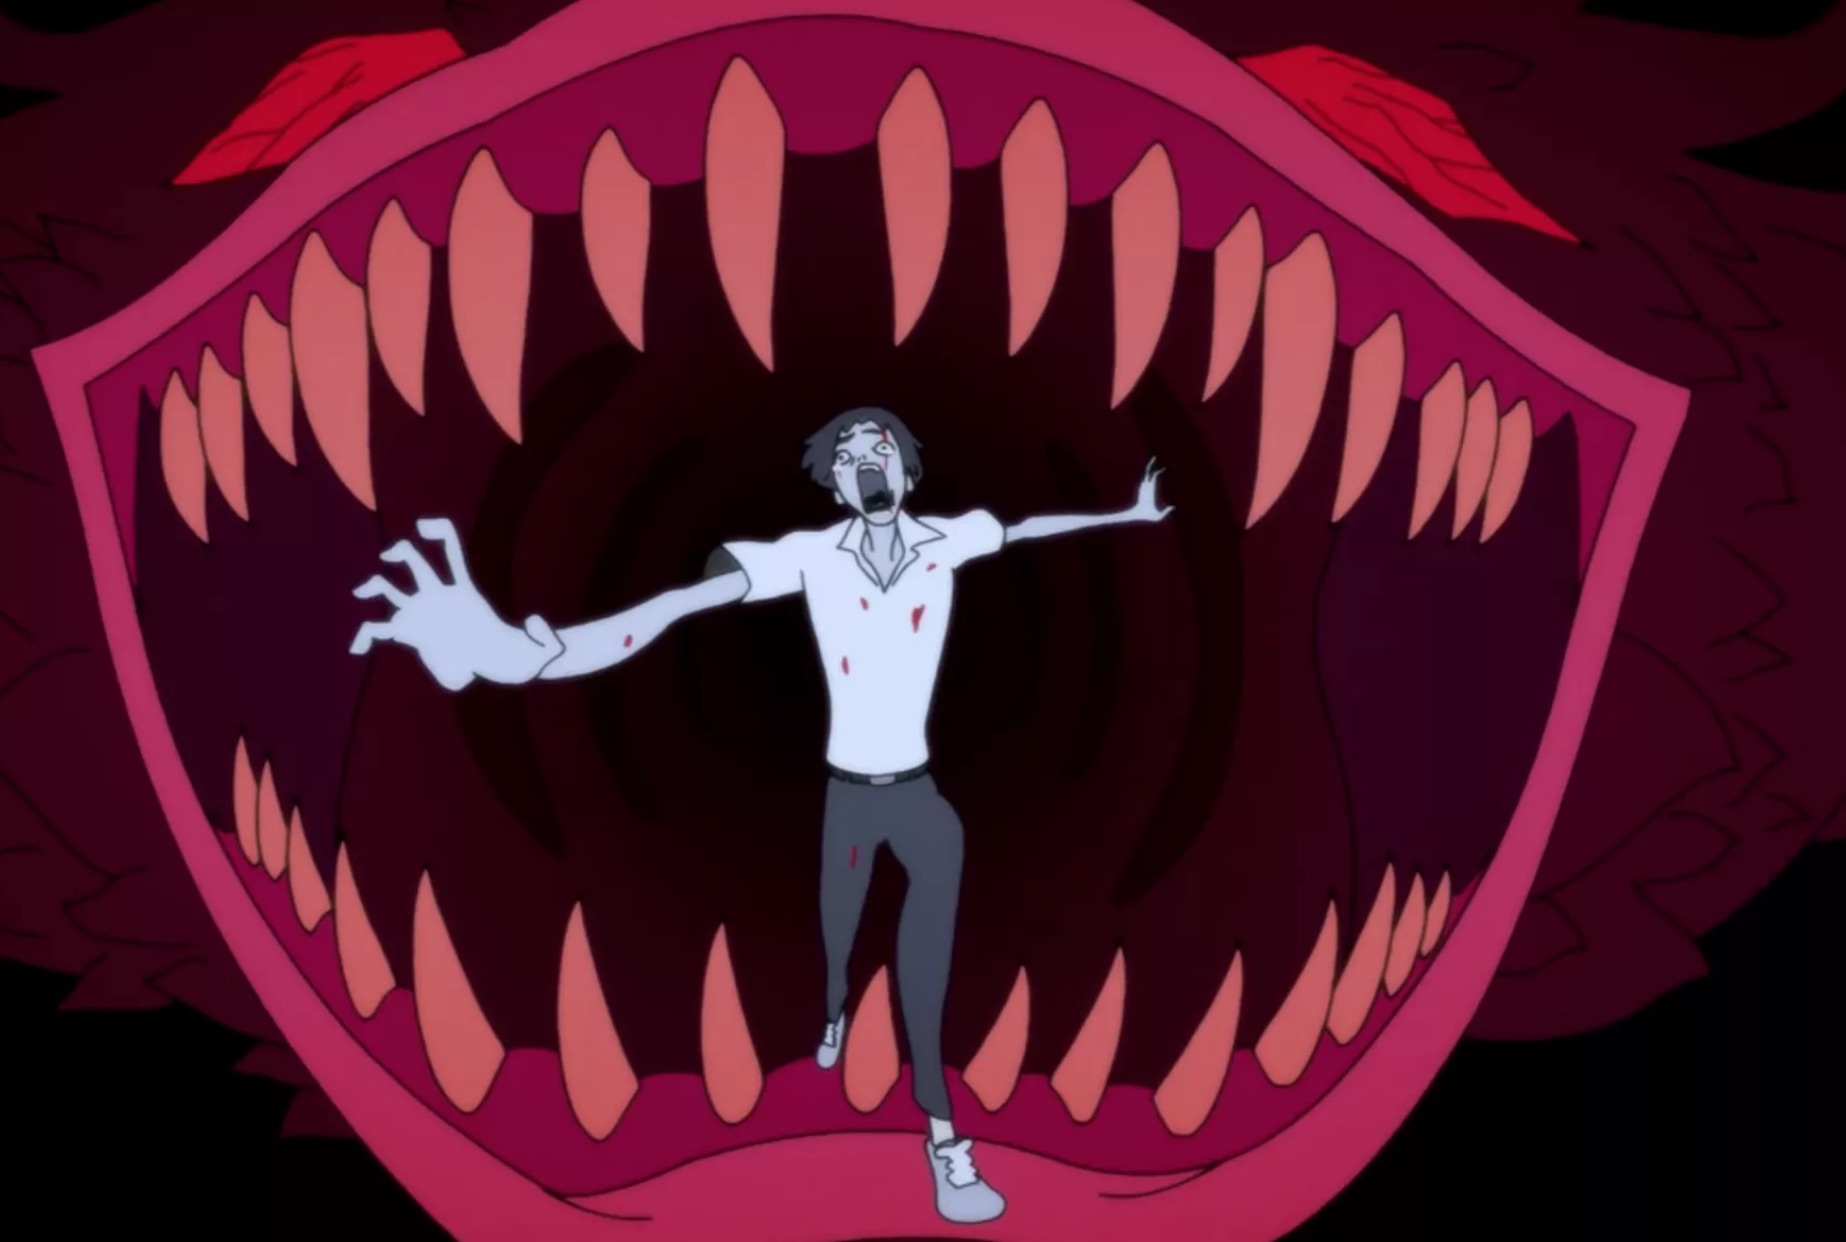 devilman crybaby mouth